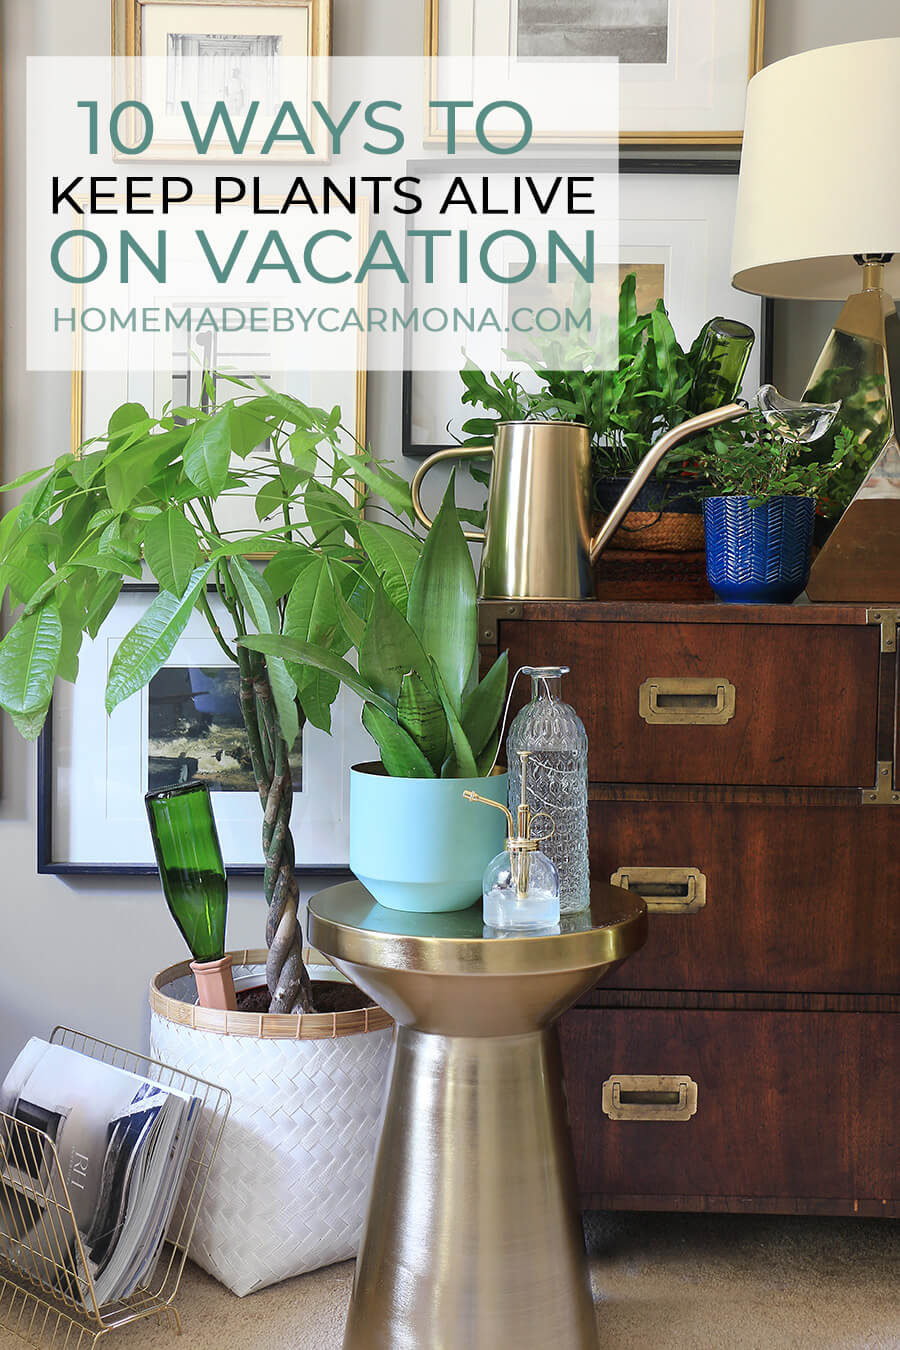 10 Ways To Keep Plants Watered On Vacation - Home Made By ... Watering Bags For House Plants on plant tanks, plant water bags, plant protection bags, plant trees, hunting bags, plant seedlings, plant wall art, dog walking bags, plant pots bags, transplant trees woven bags, shopping bags, plant shrubs, plant growing bags, plant seeds bags, christmas tree removal bags, plant cutting bags, plant transport bags, plant propagation bags,